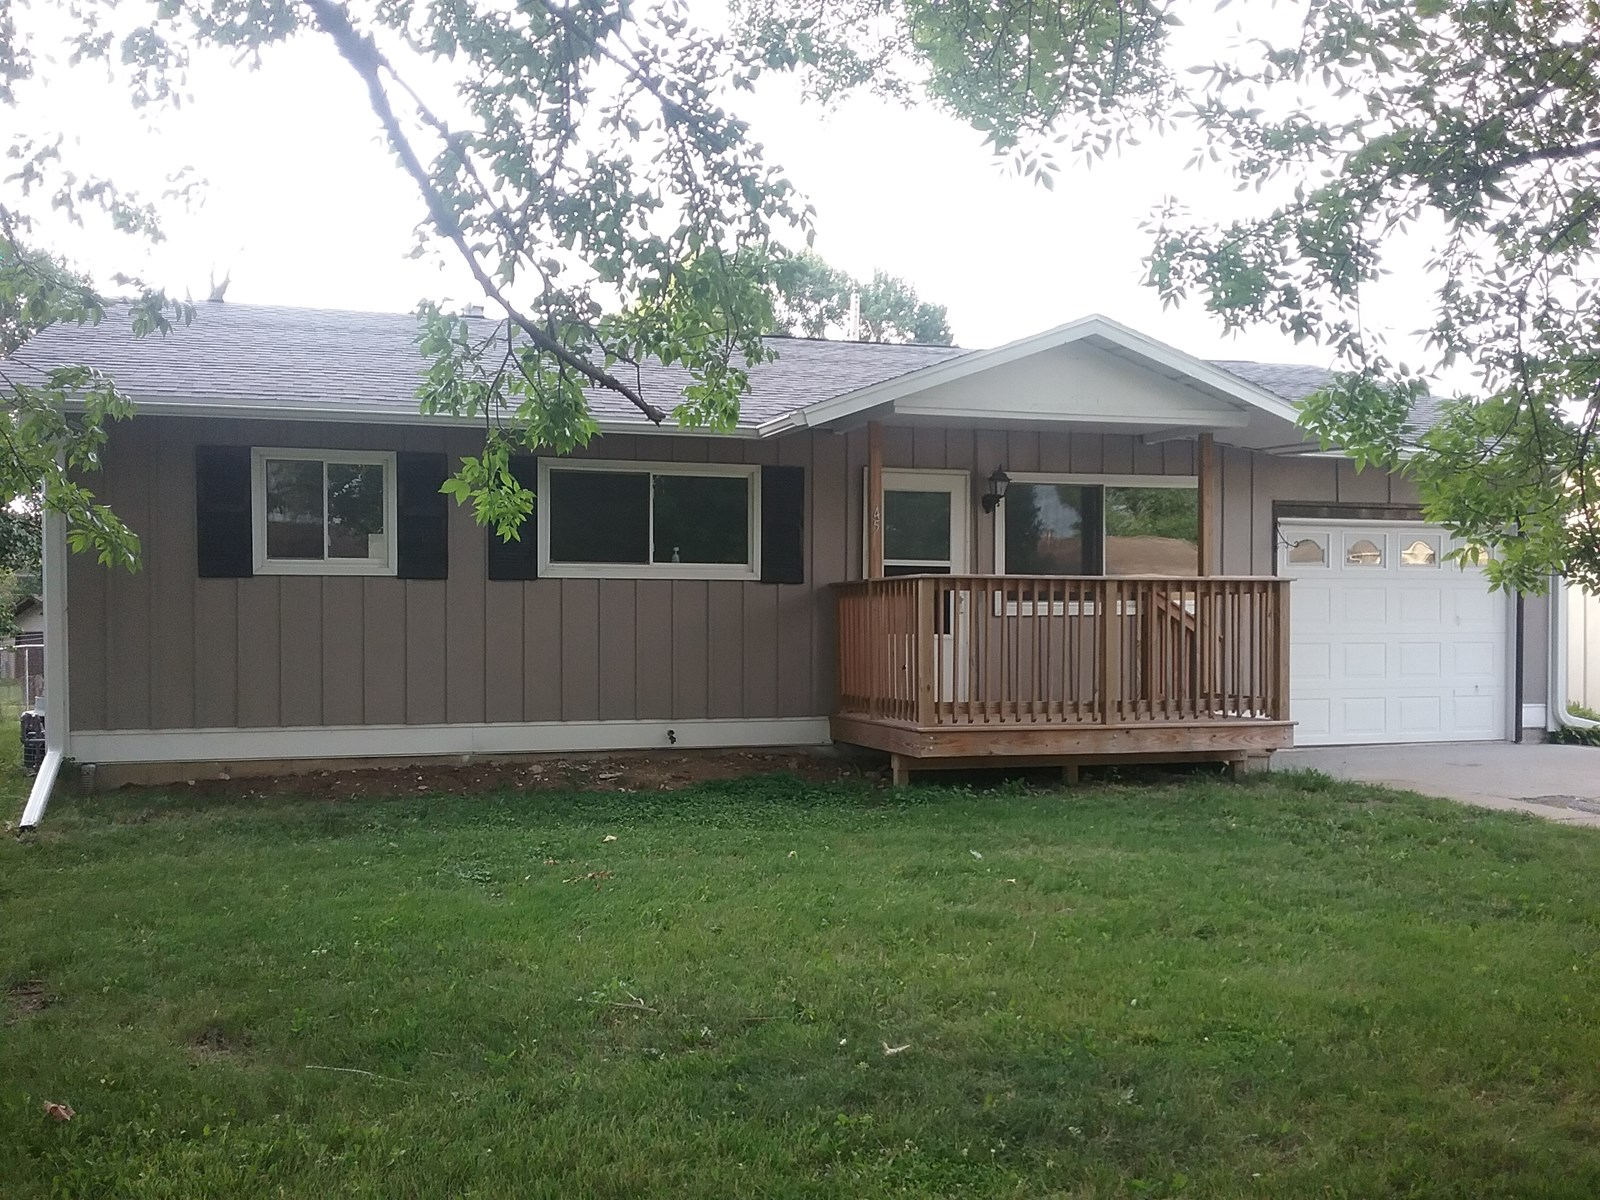 3 Bedroom Home for Sale in Keokuk, IA